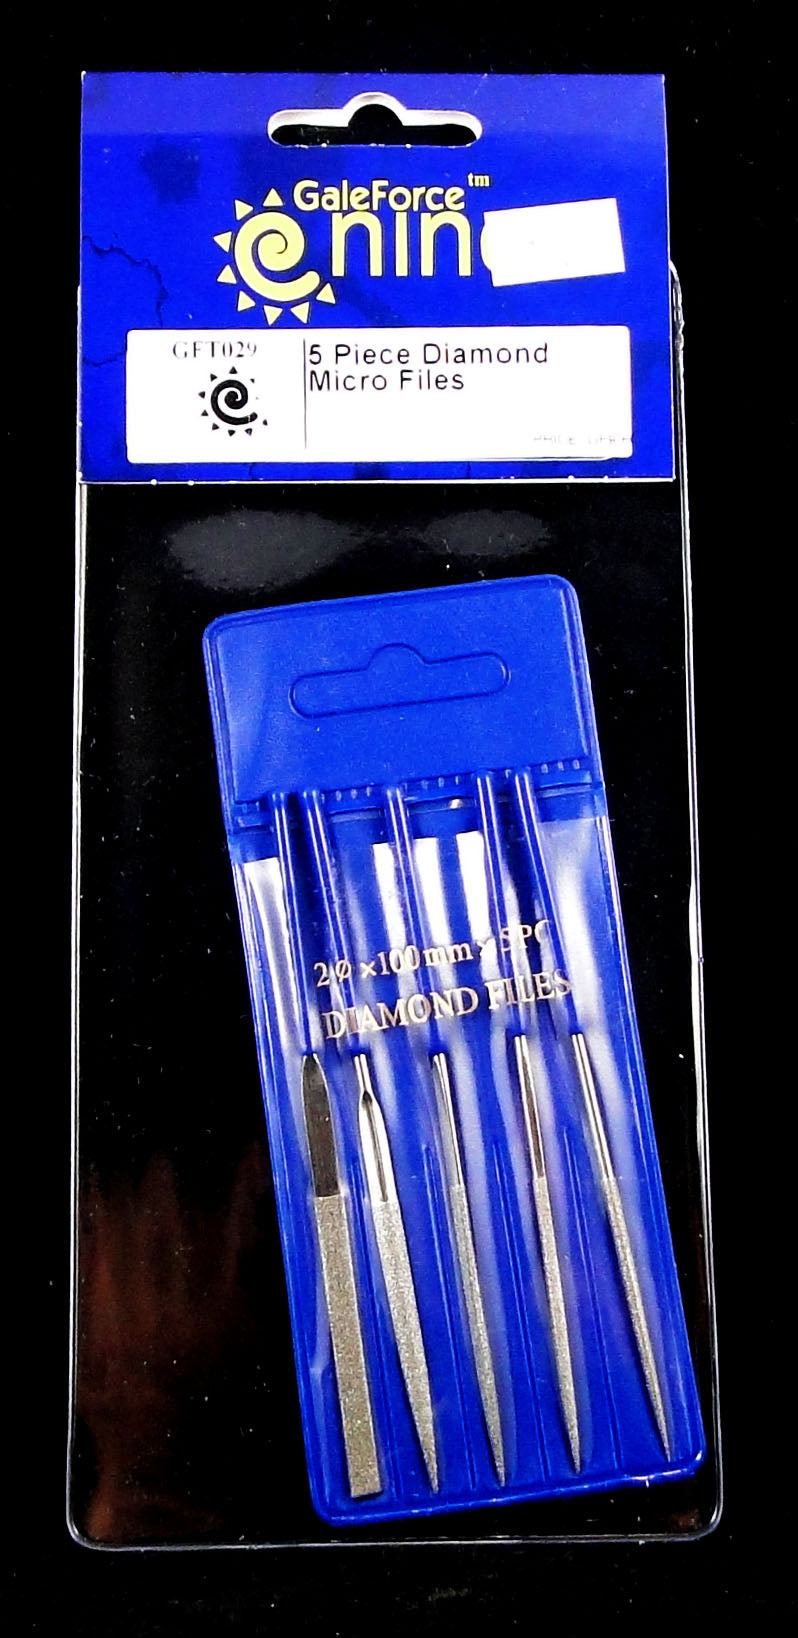 Gale Force Nine 5 Piece Diamond Micro Files